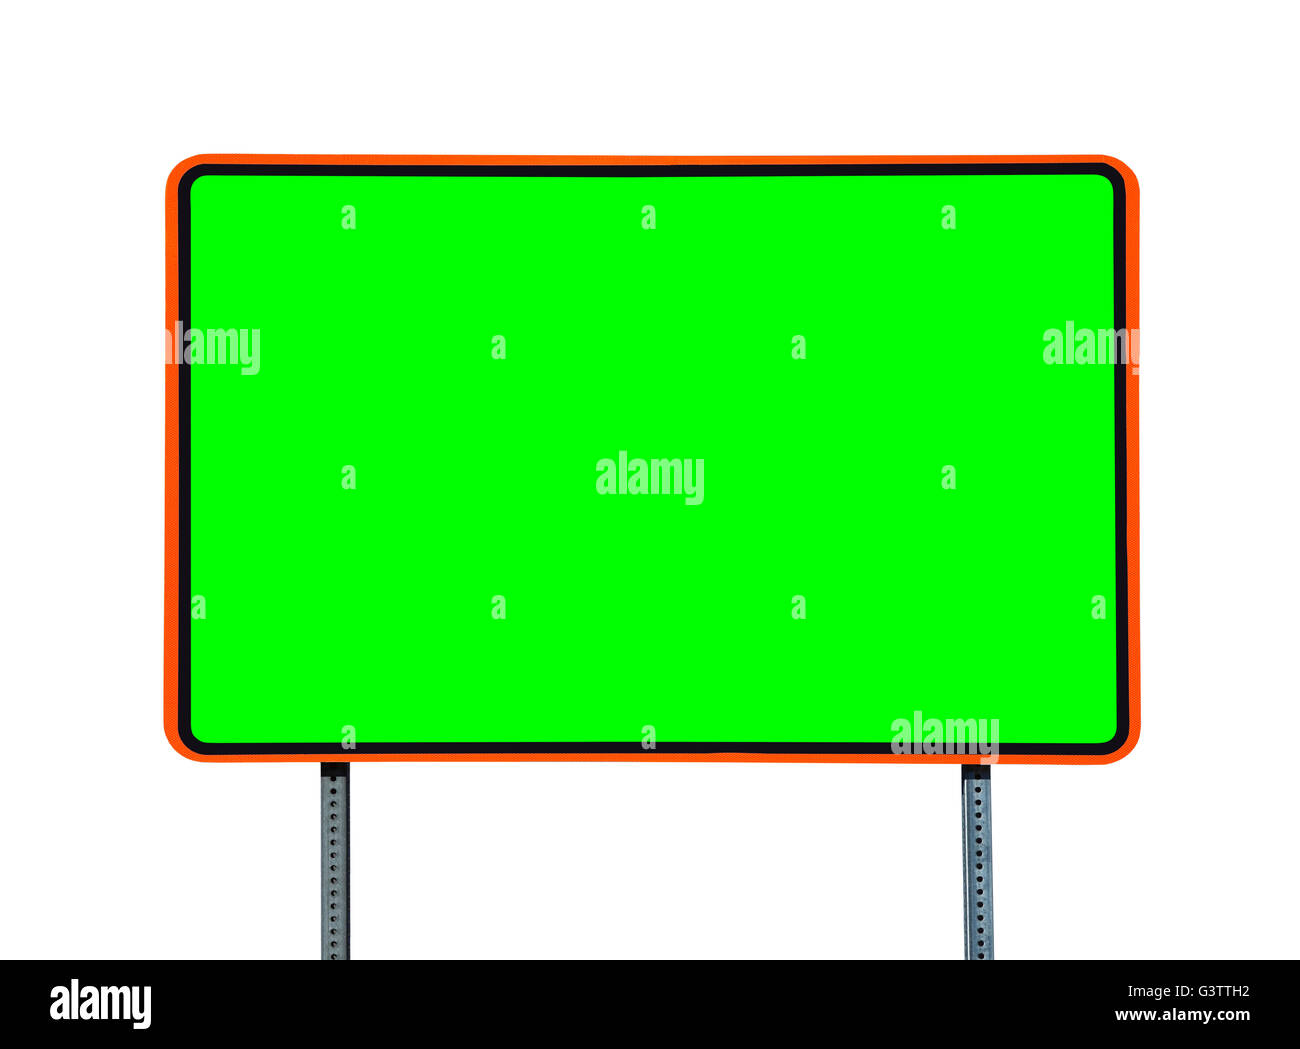 Highway road sign isolated on white with chroma key green screen insert. - Stock Image